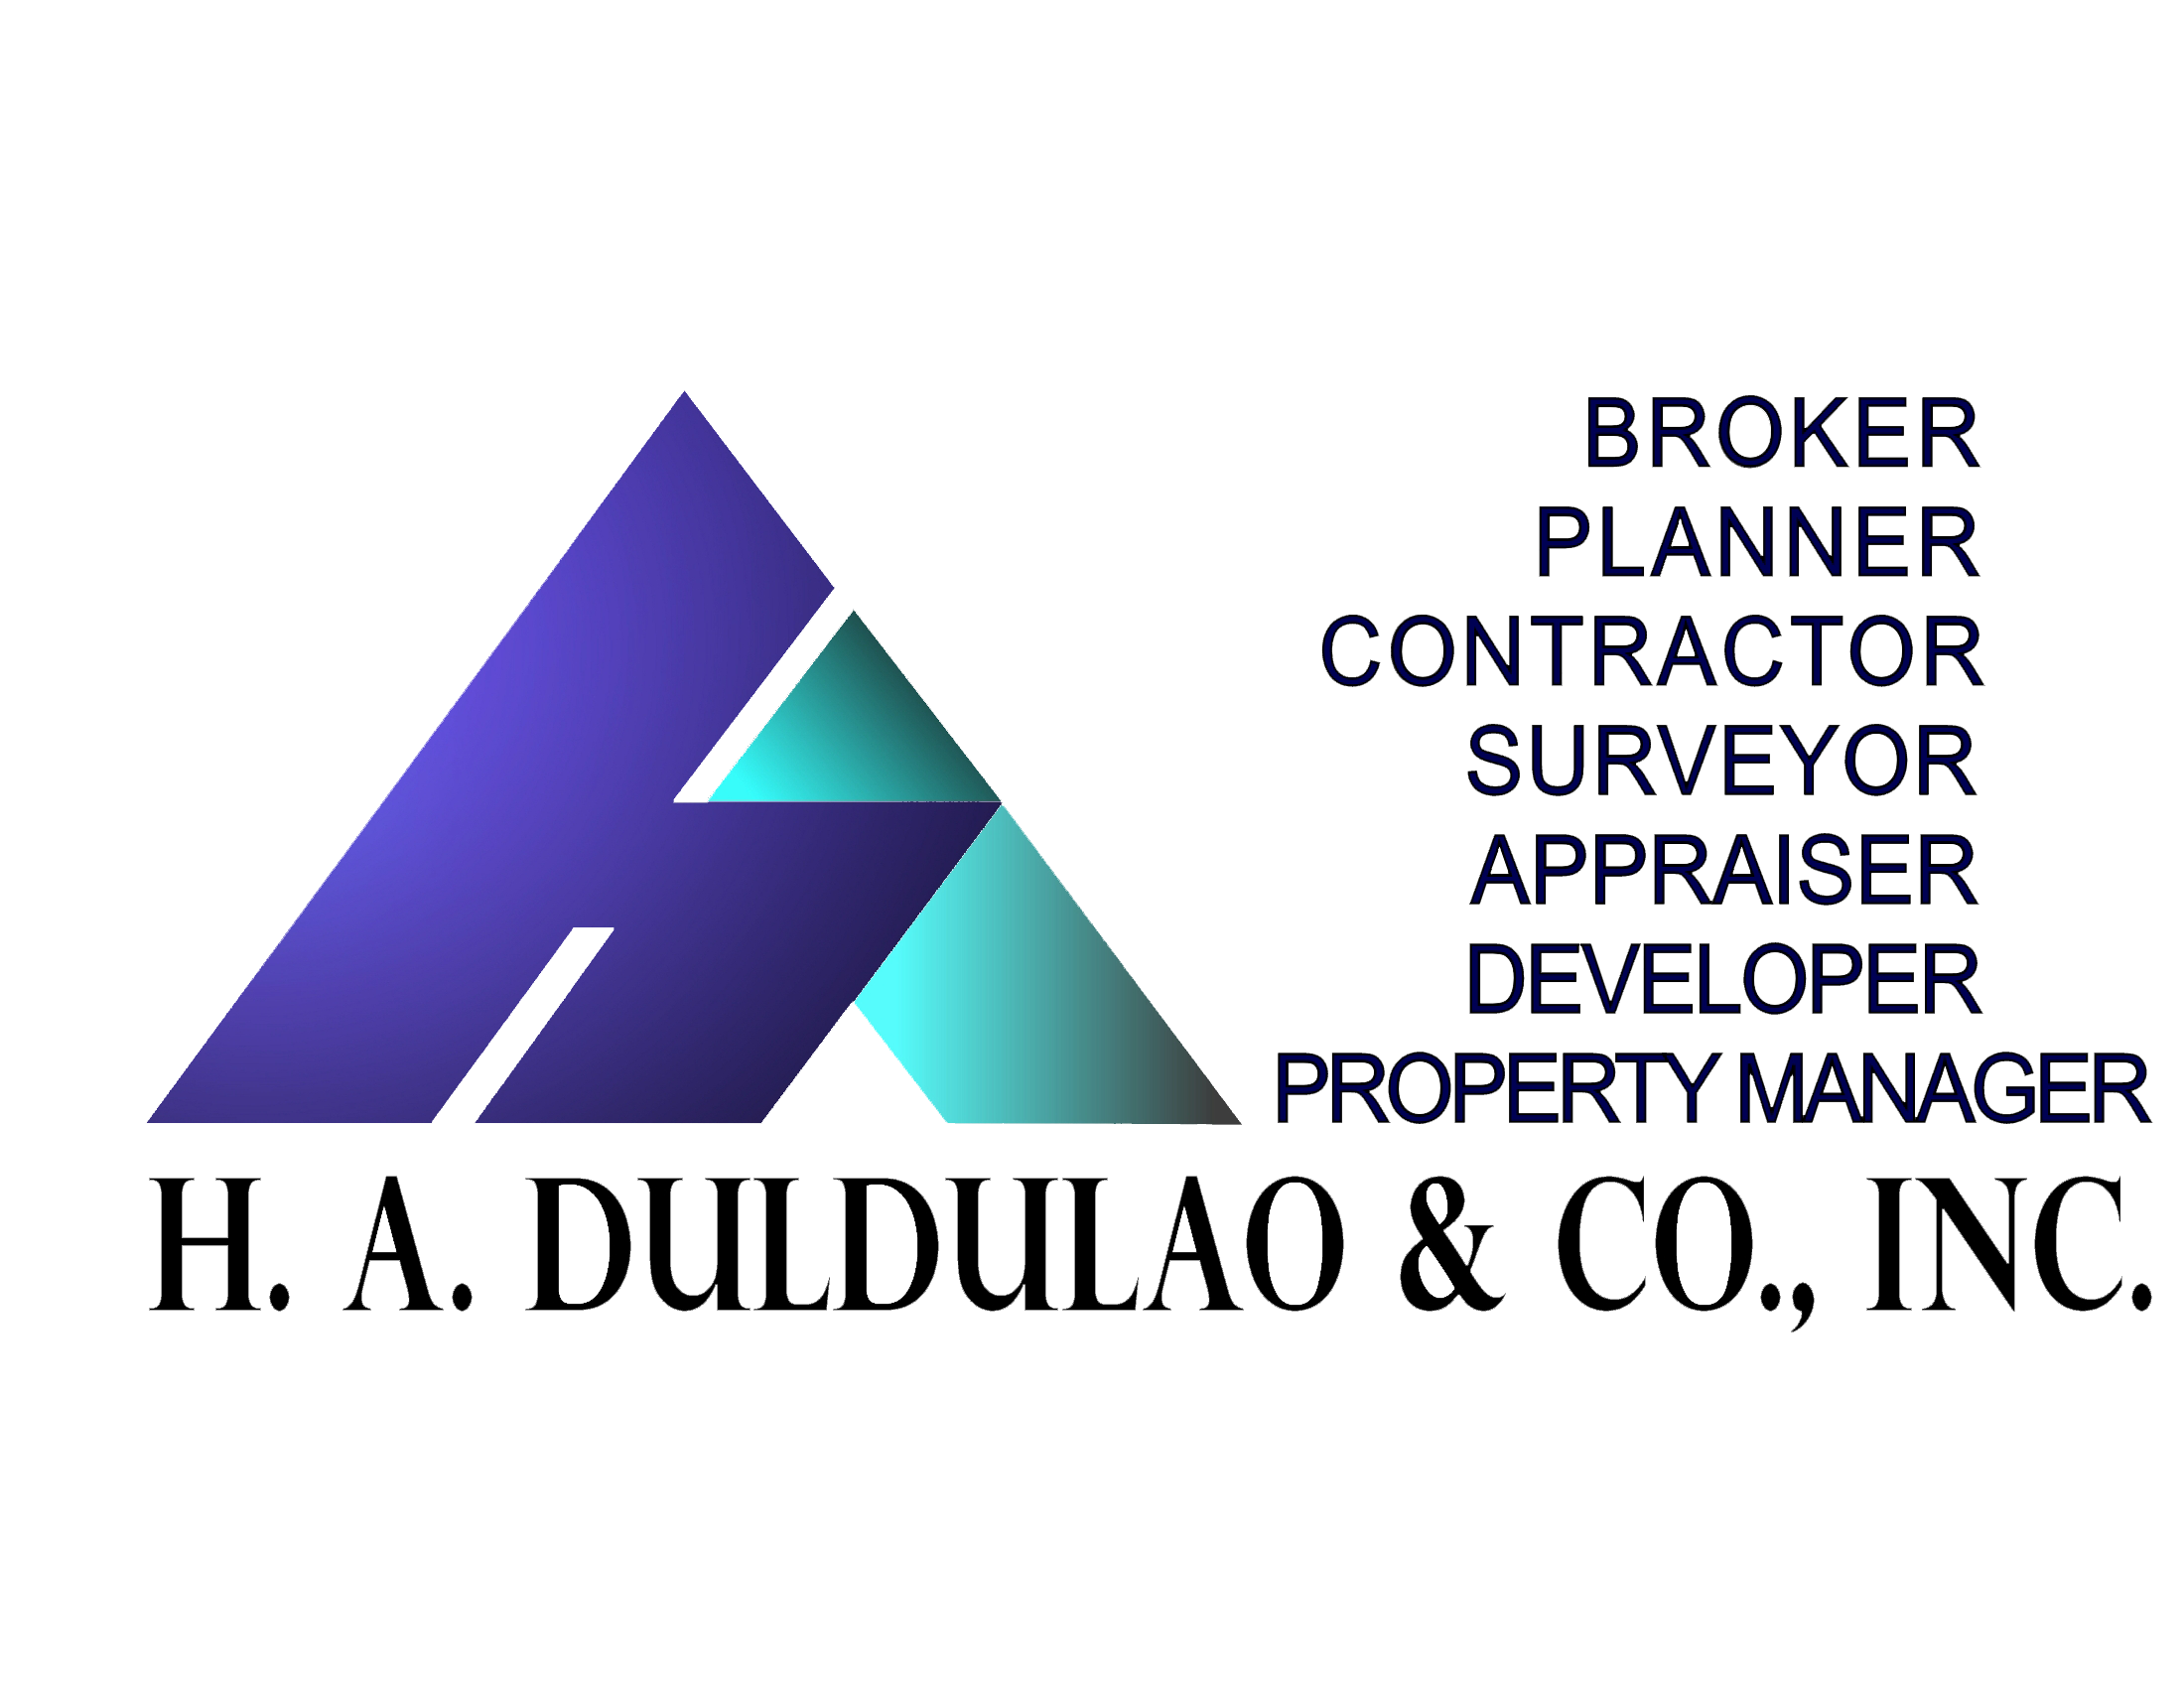 H. A. Duldulao & Co., Inc